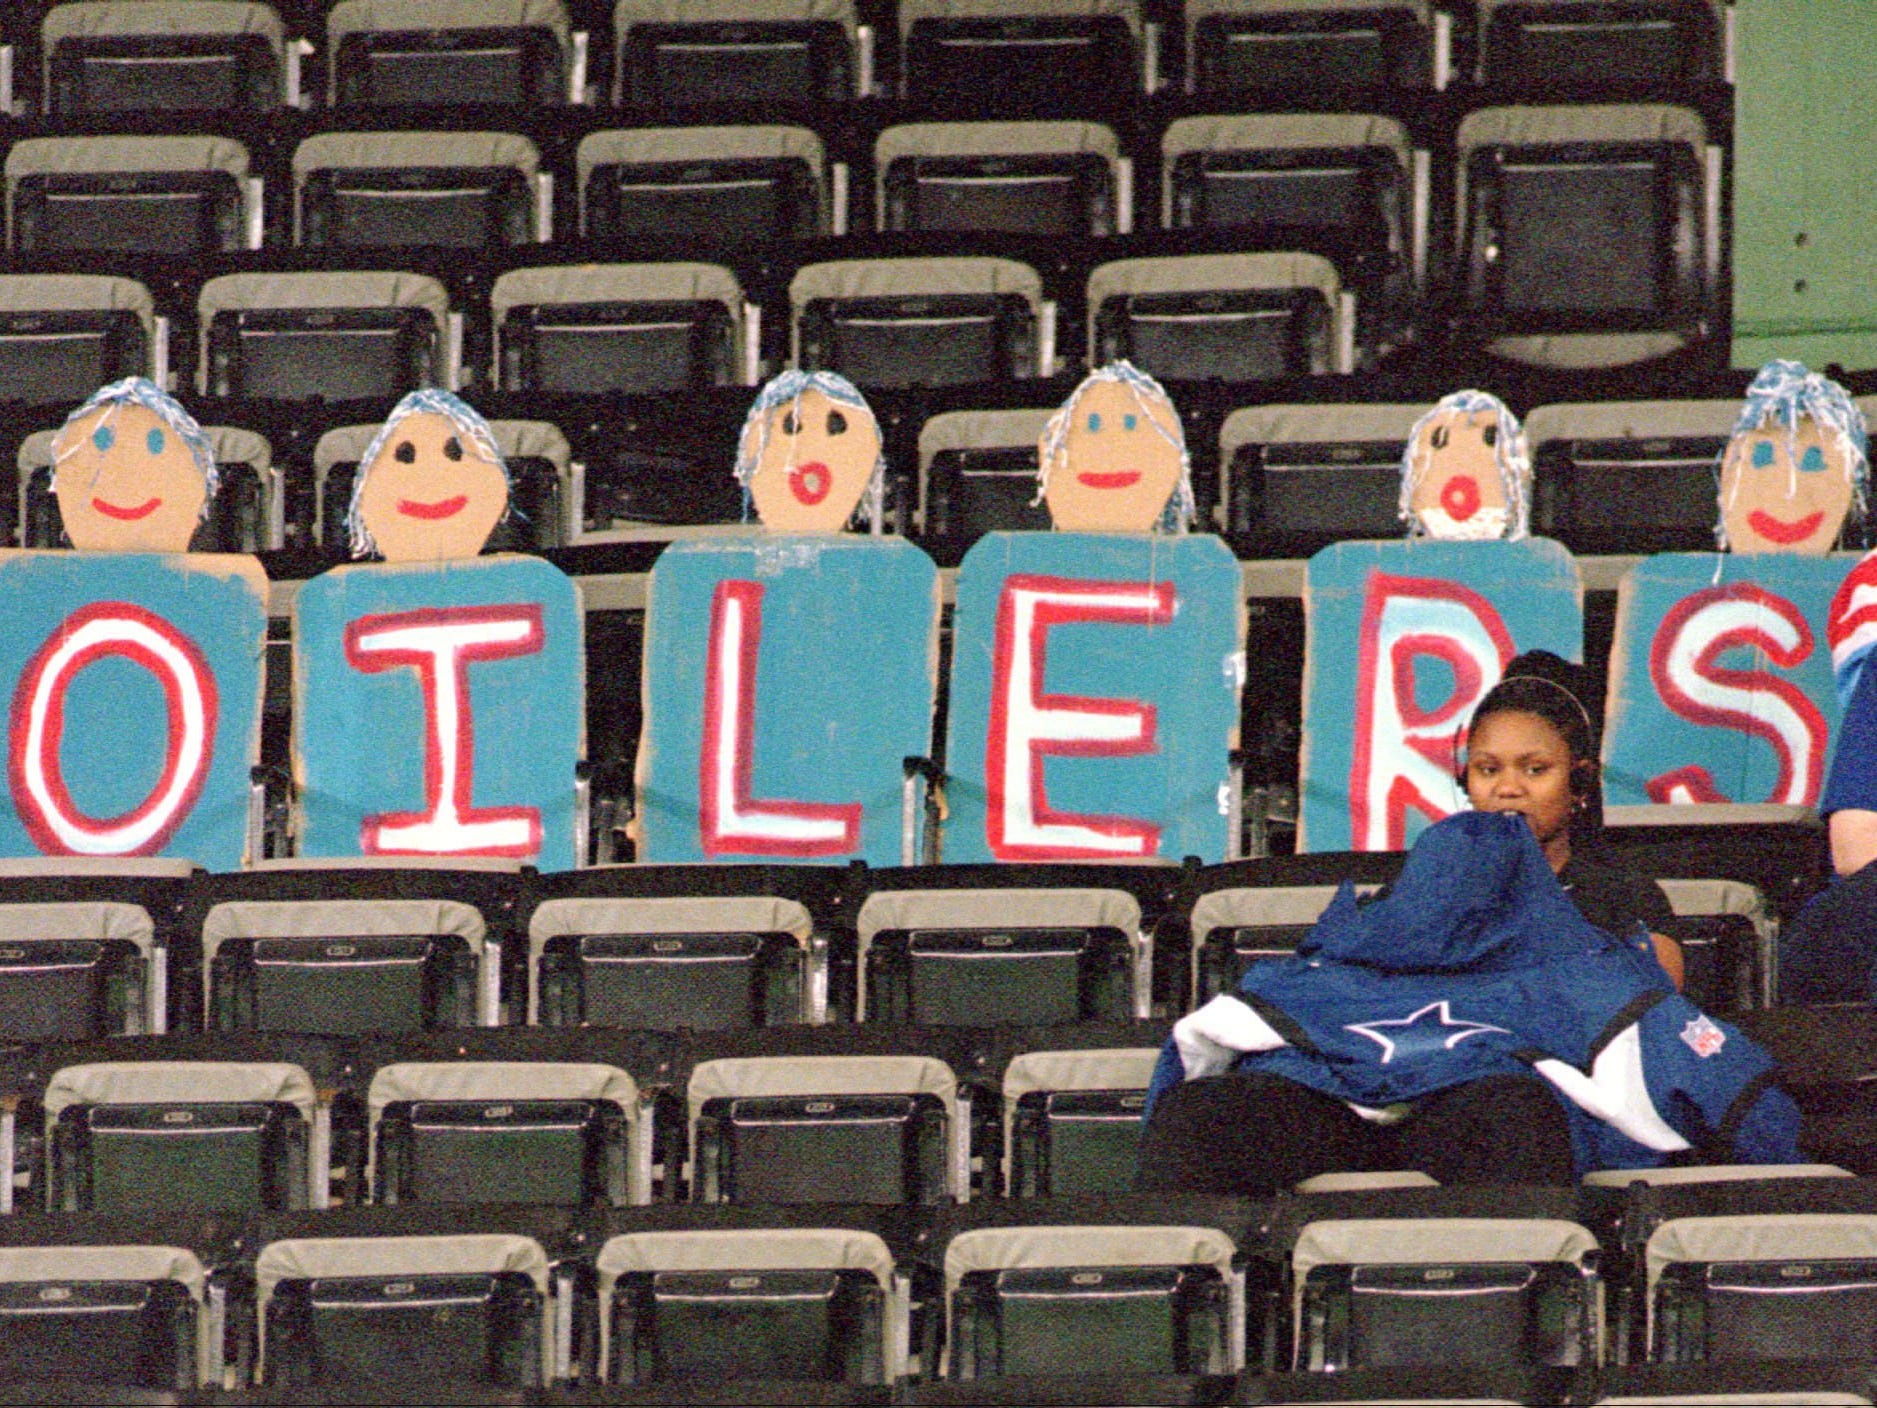 "Houston Oilers ""fans"" fill just six of the 63,001 seats in the Astrodome as the Oilers play the Cincinnati Bengals in their last home game of the season Dec. 15, 1996 in Houston. The lameduck Oilers have found few real fans in their next-to-last season in Houston before the team moves to Nashville."